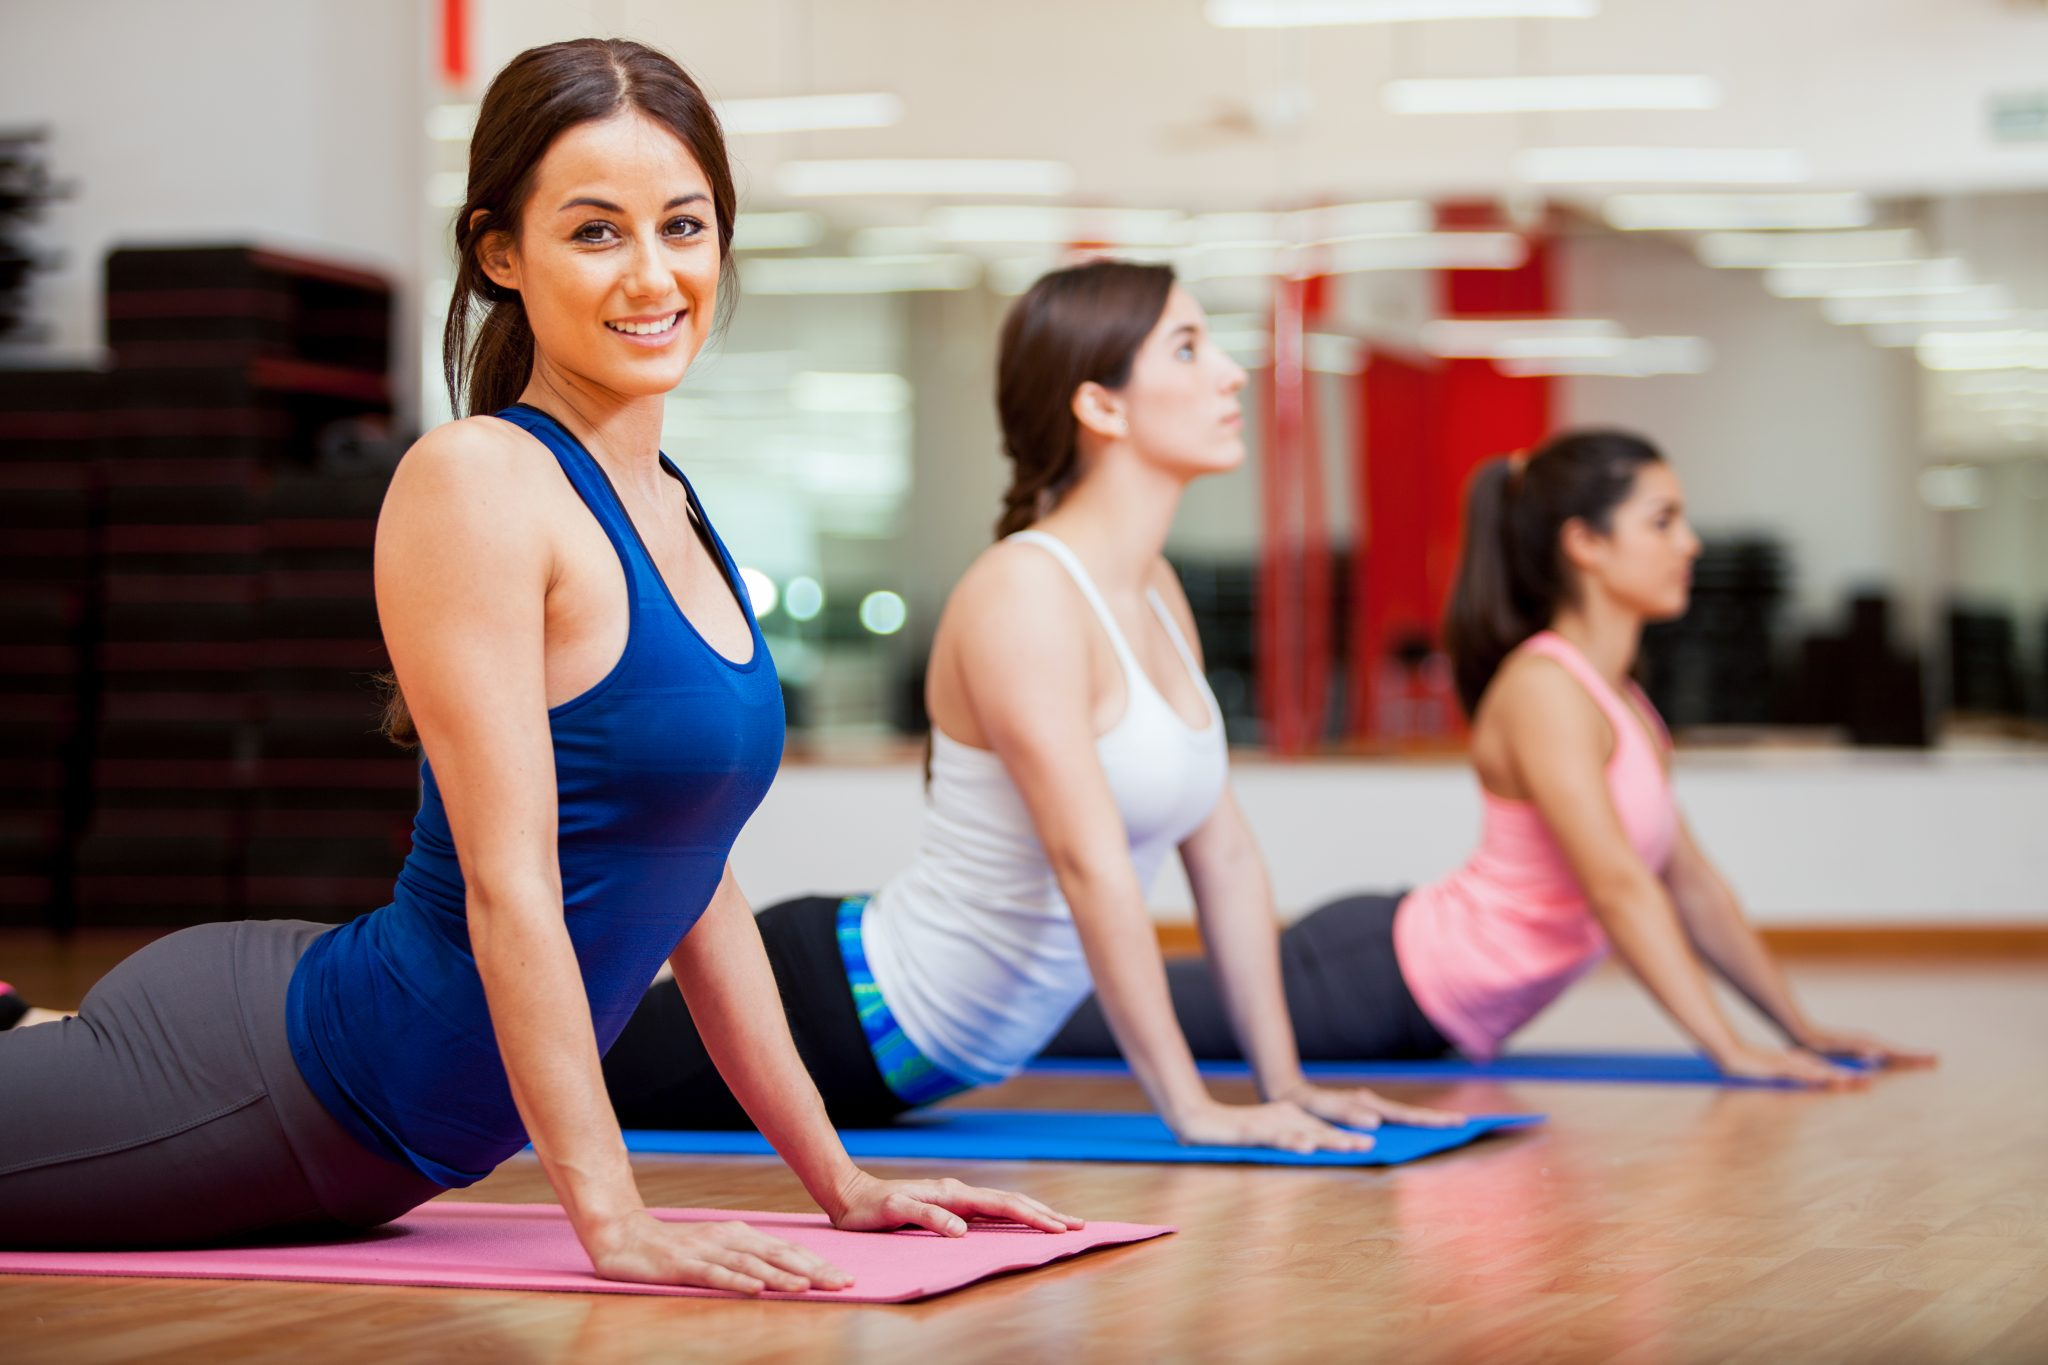 Yoga - Know Which Asanas Can Help With Osteoporosis!